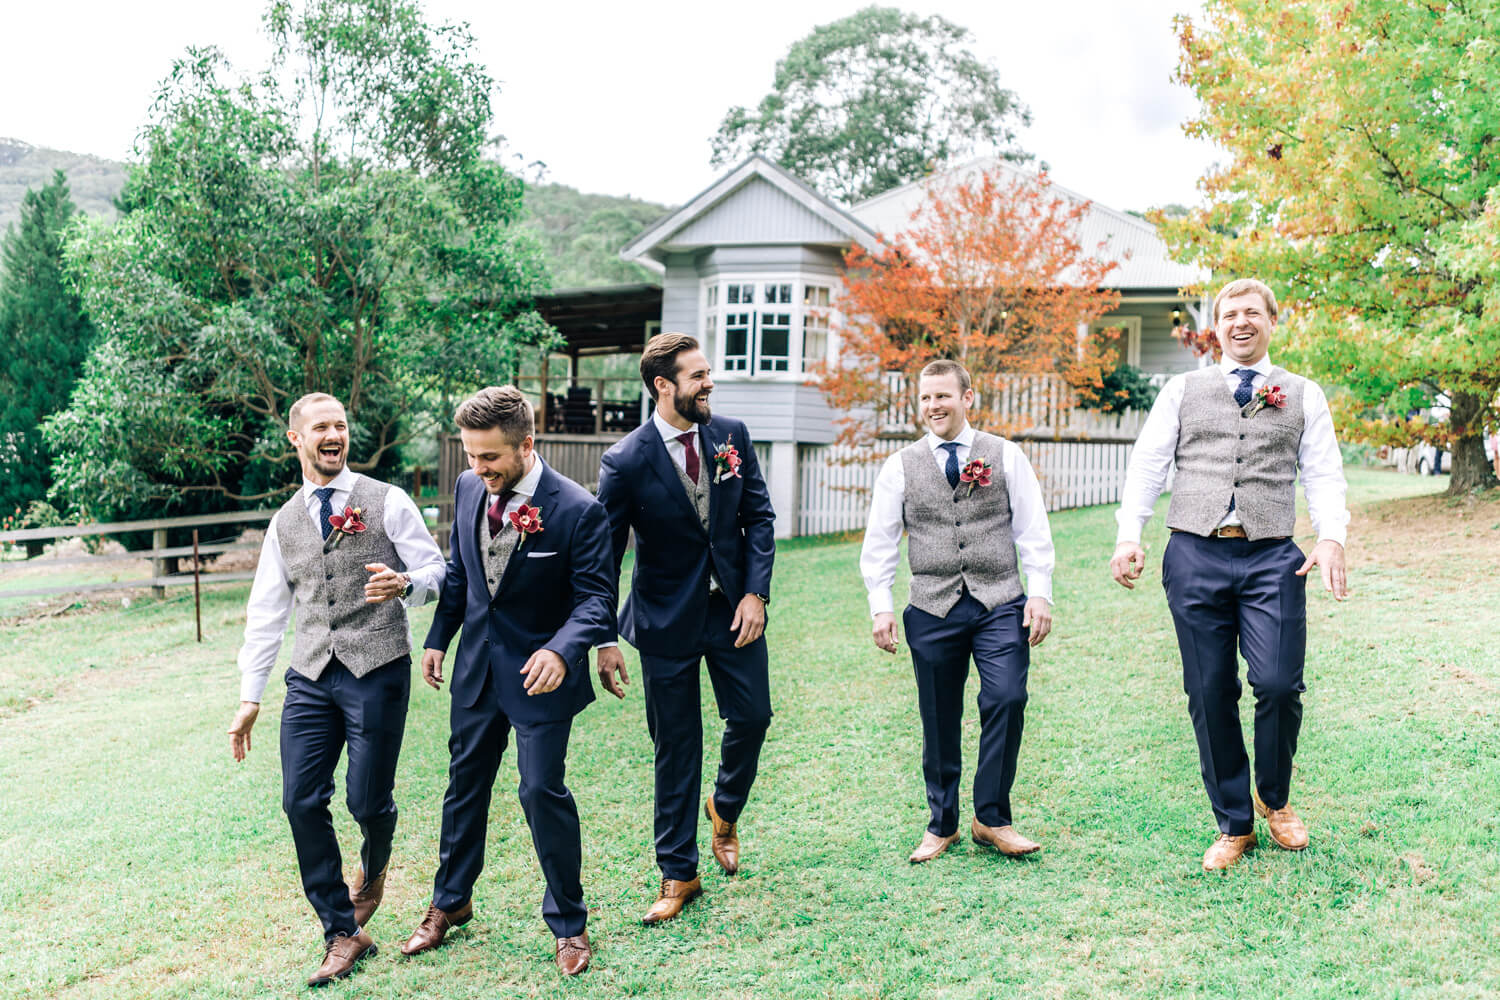 hunter valley wedding photographer walking groom and groomsman walking with autumn colours